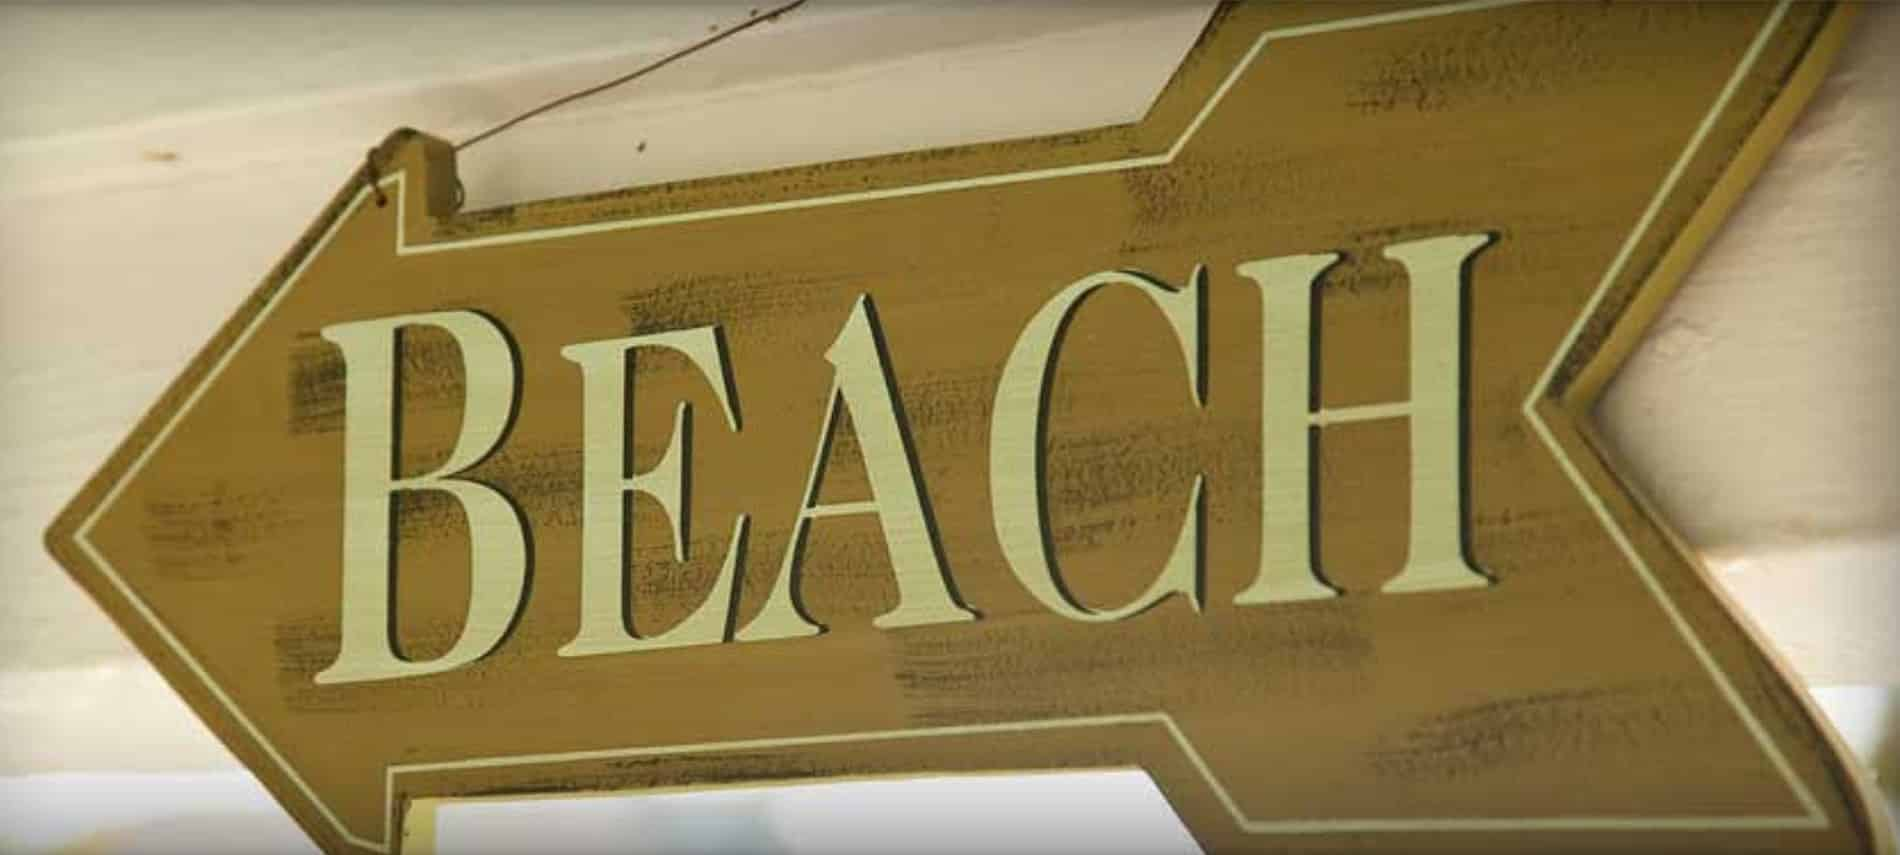 "Large wooden arrow sign with the word ""BEACH"" in beige capital letters."